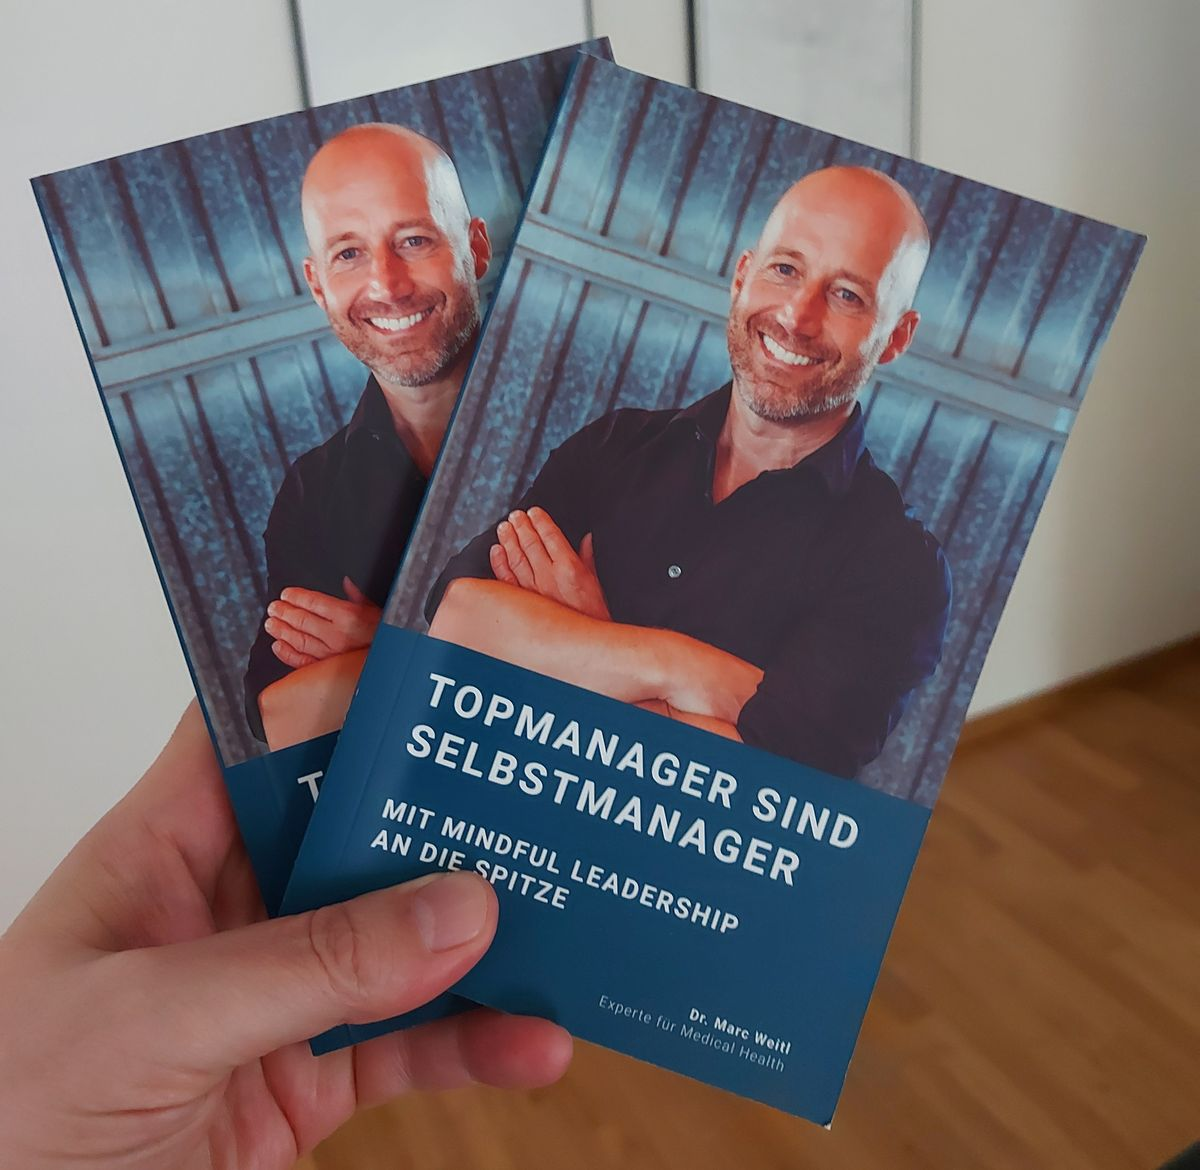 Dr. Marc Weitl Topmanager sind Selbstmanager – Mit Mindful Leadership an die Spitze ISBN 978-3-00-064651-5, 14,90 Euro